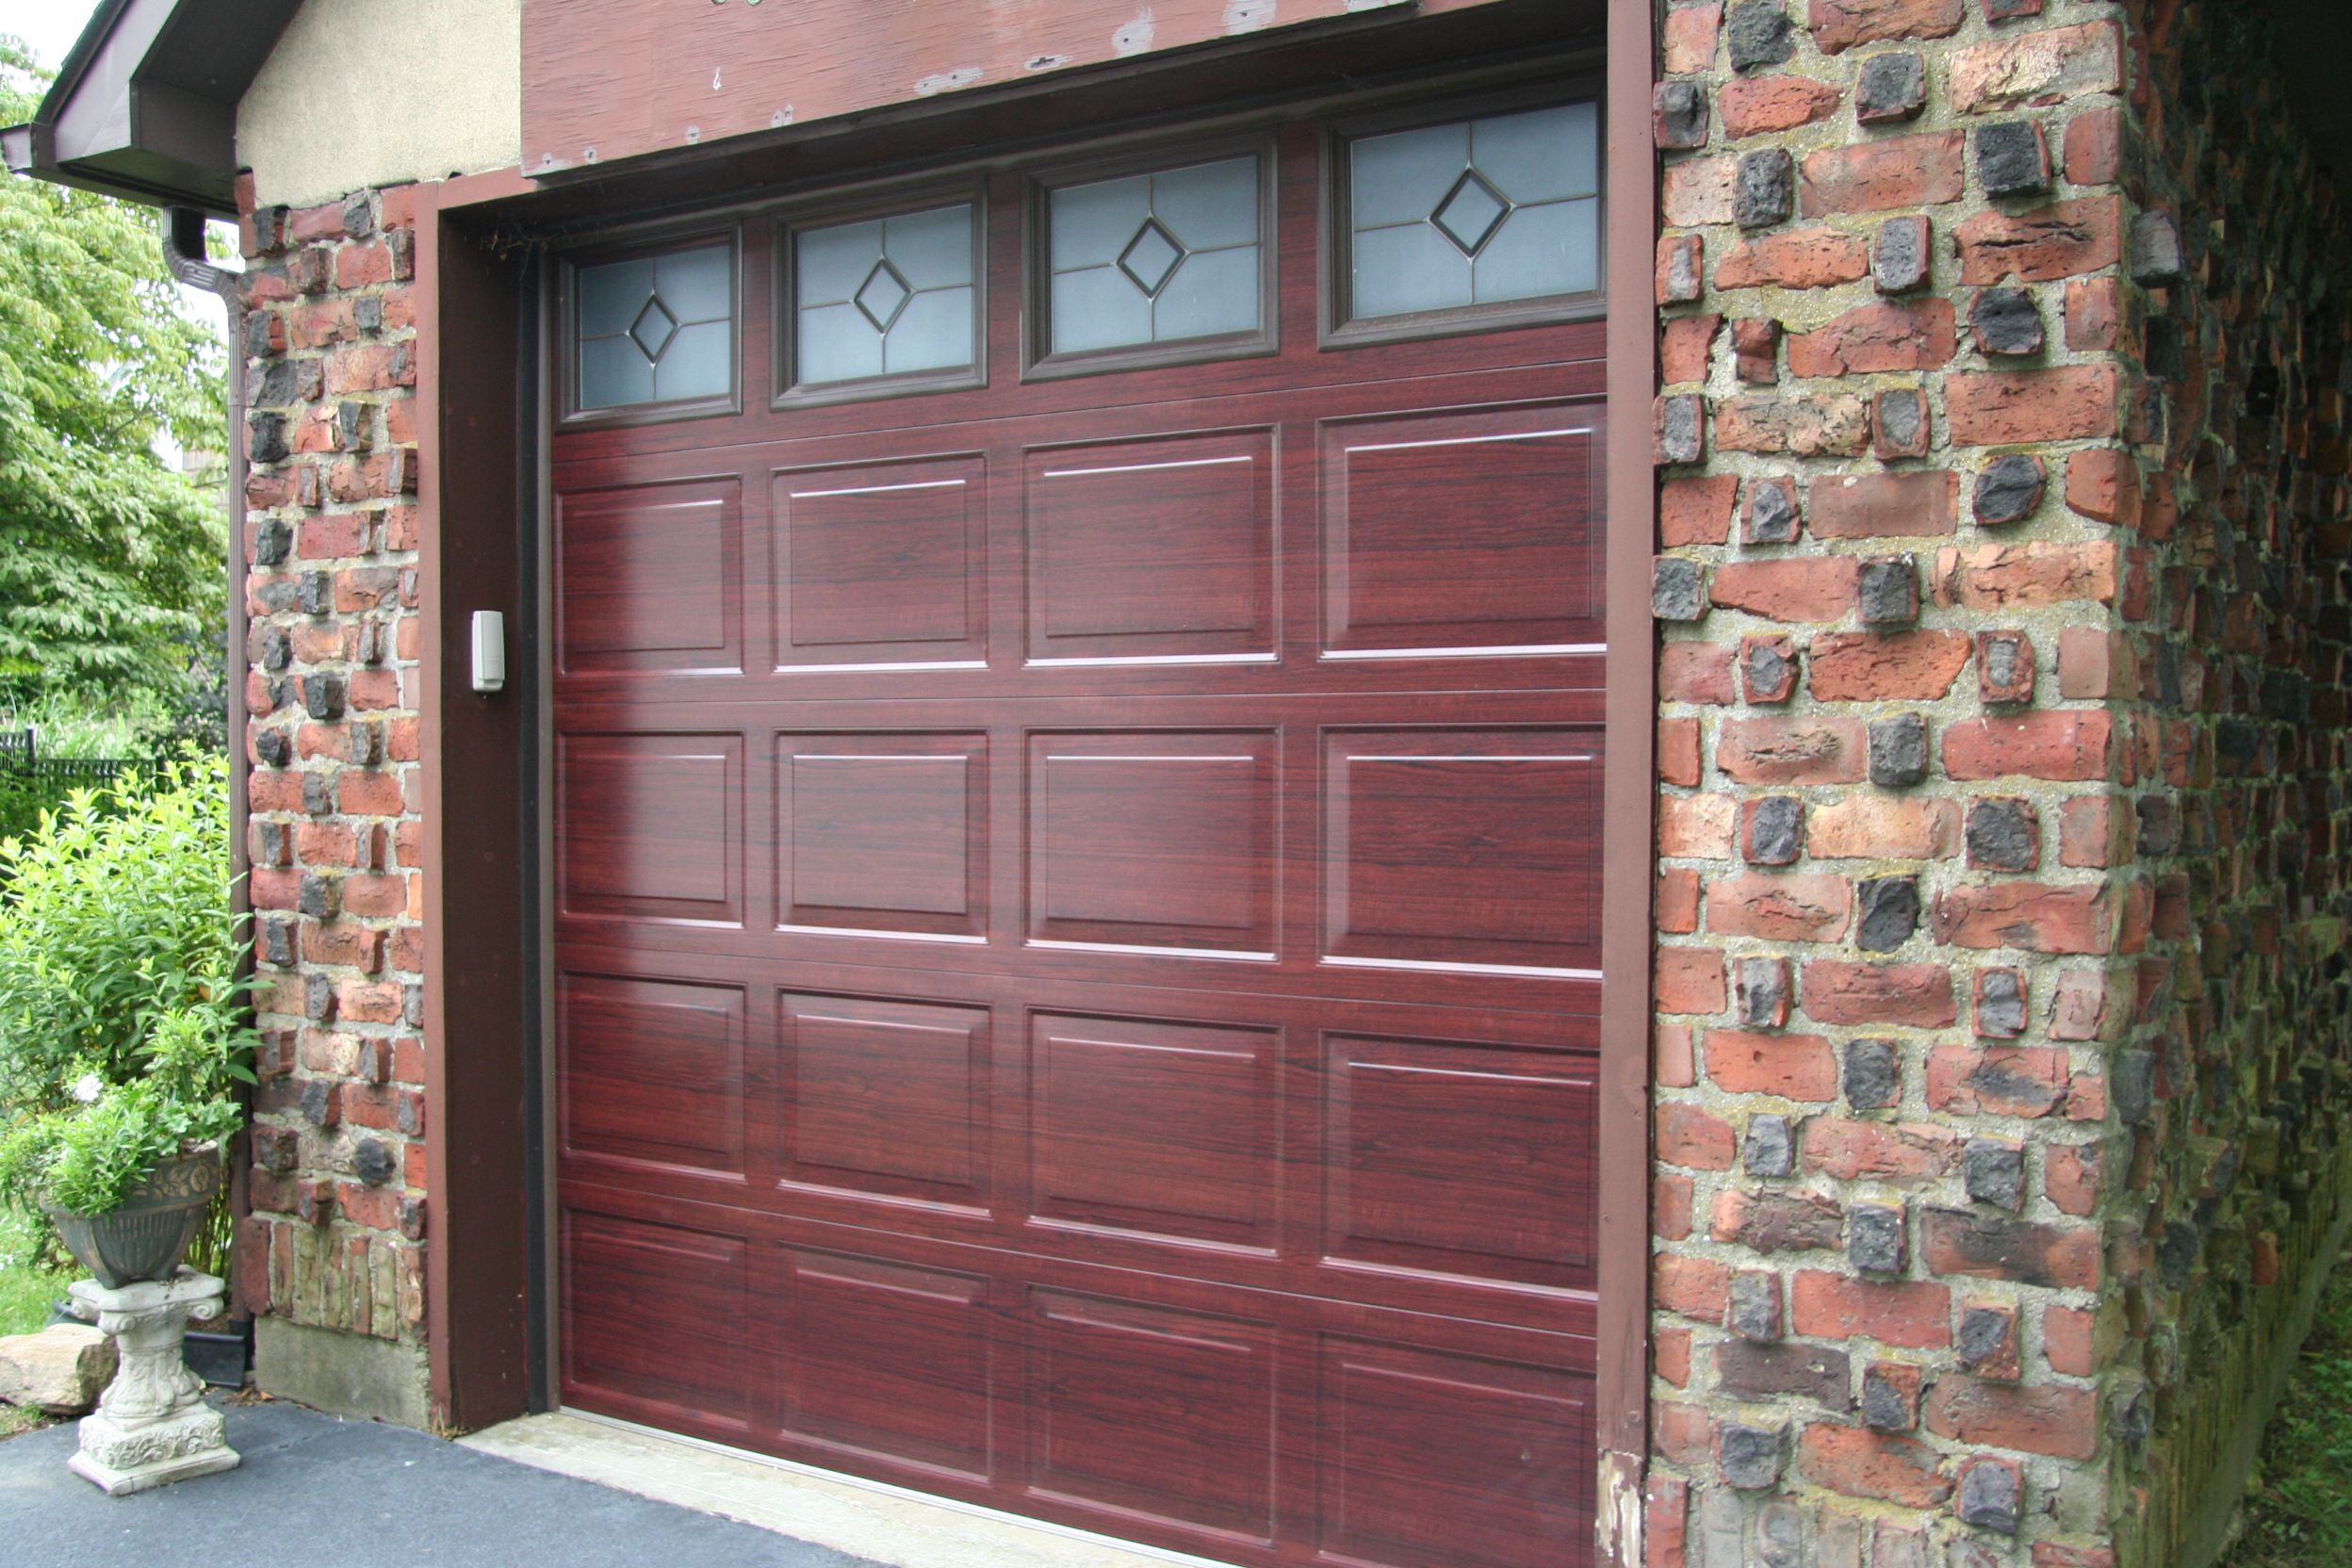 door raynor and nadidecor sdie side top biz simple com garage themiracle ideas seal